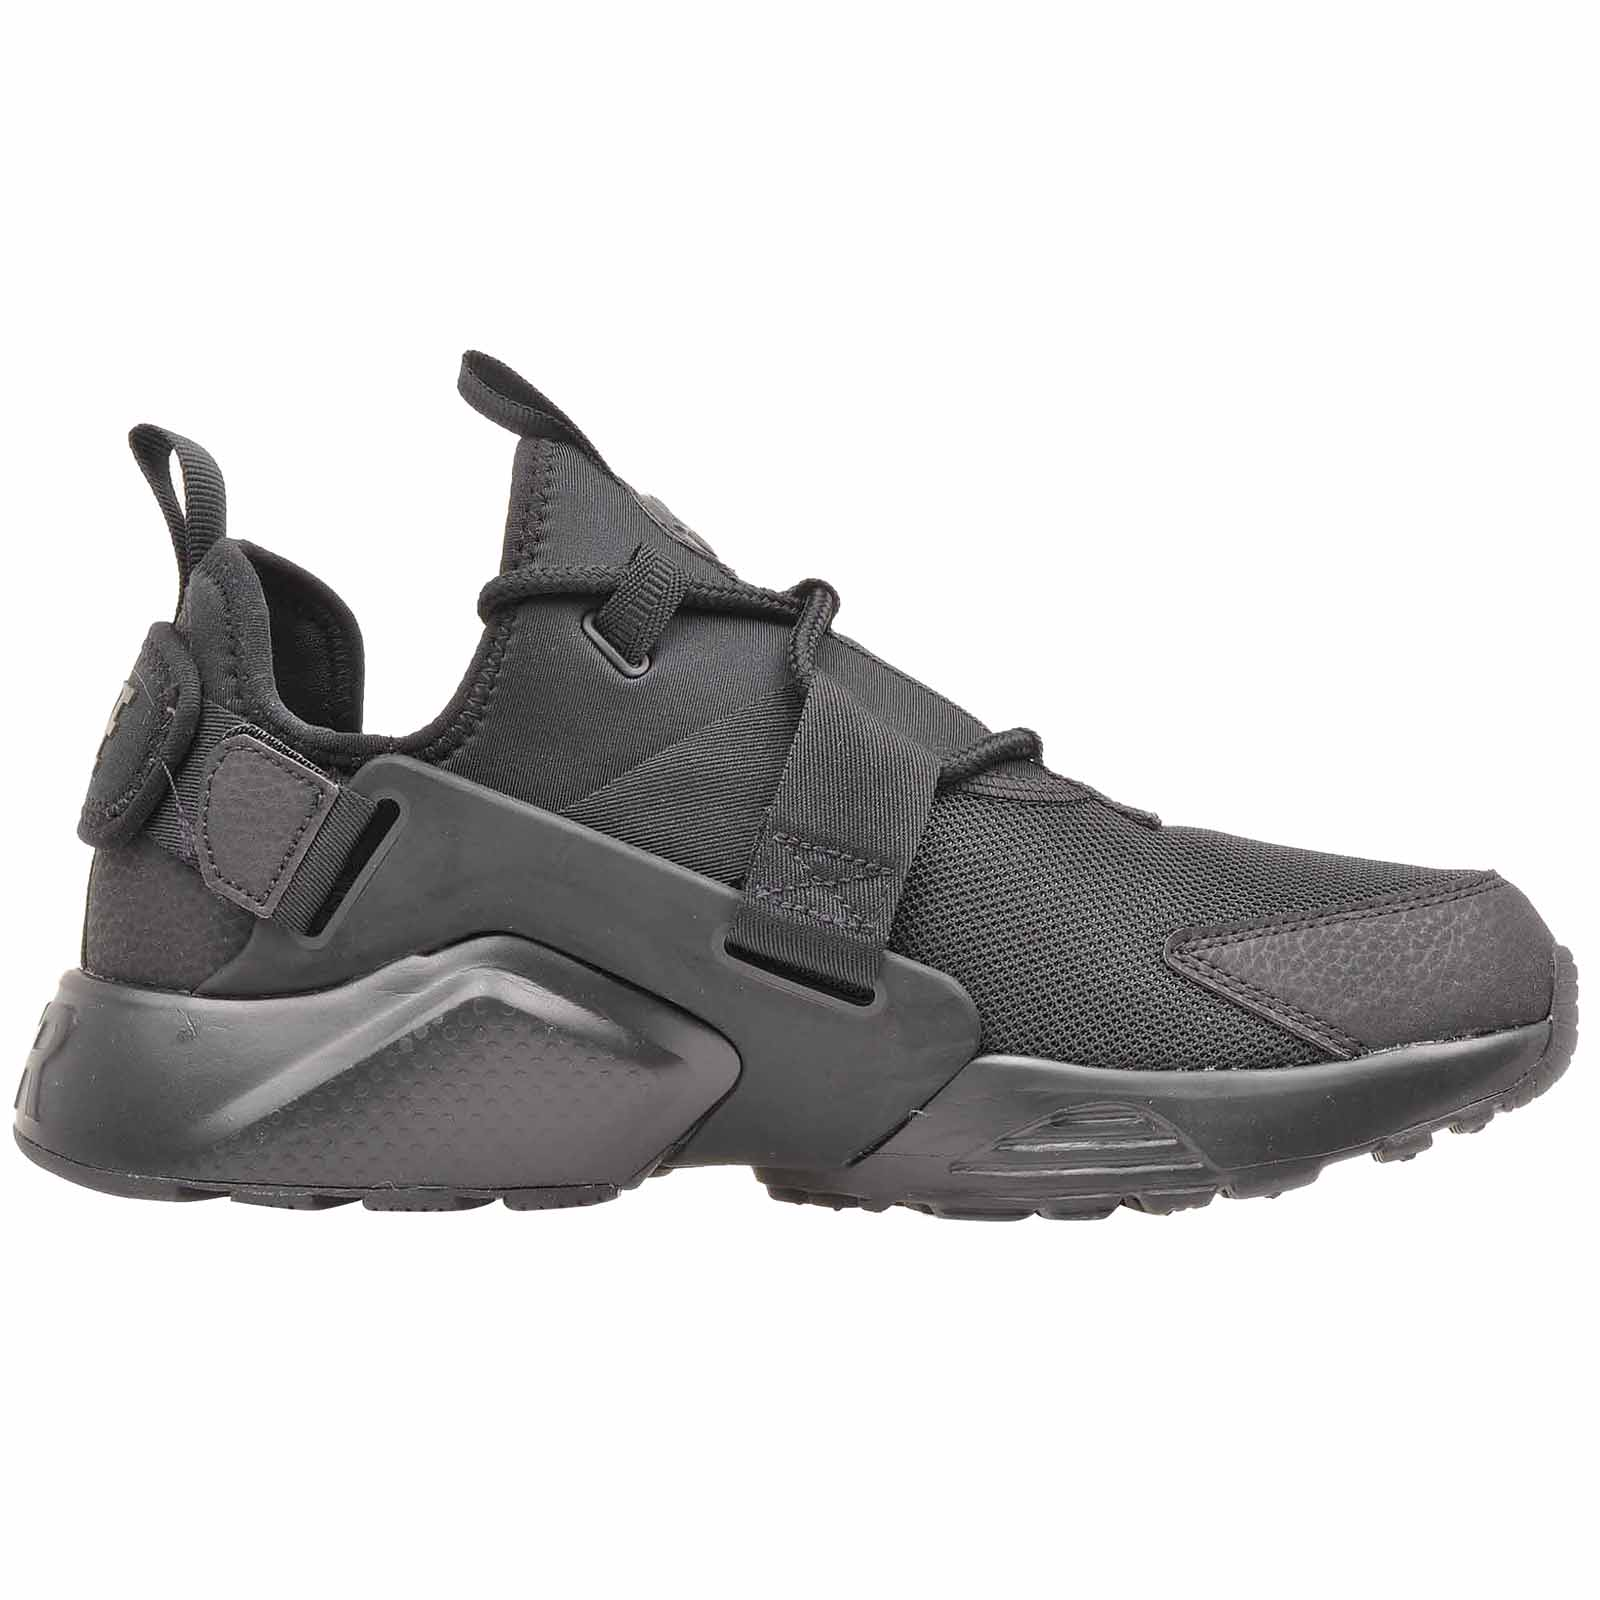 13fa6ea4b05c0 Nike Air Huarache City Low Running Womens Shoes Black Grey AH6804 ...